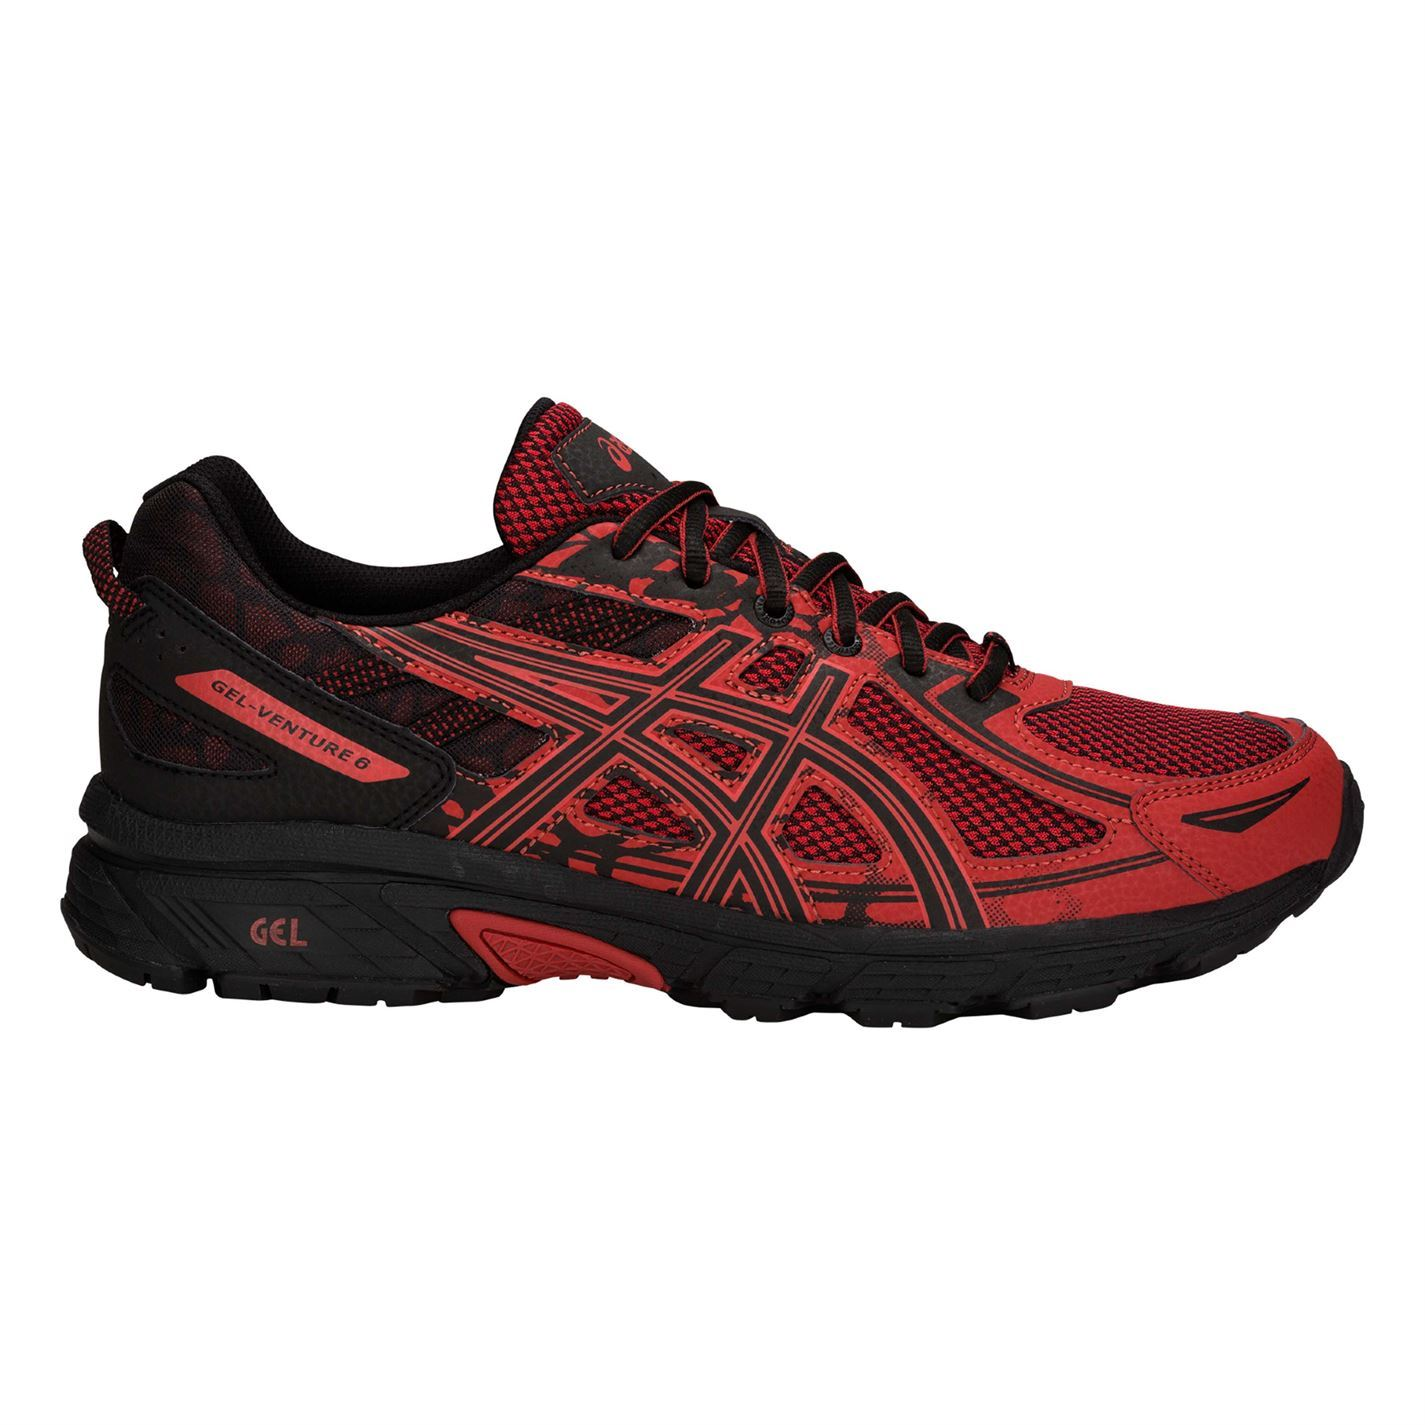 Asics  Herren Gel Venture 6 Trail Running Schuhes Schuhes Running 0a8d51